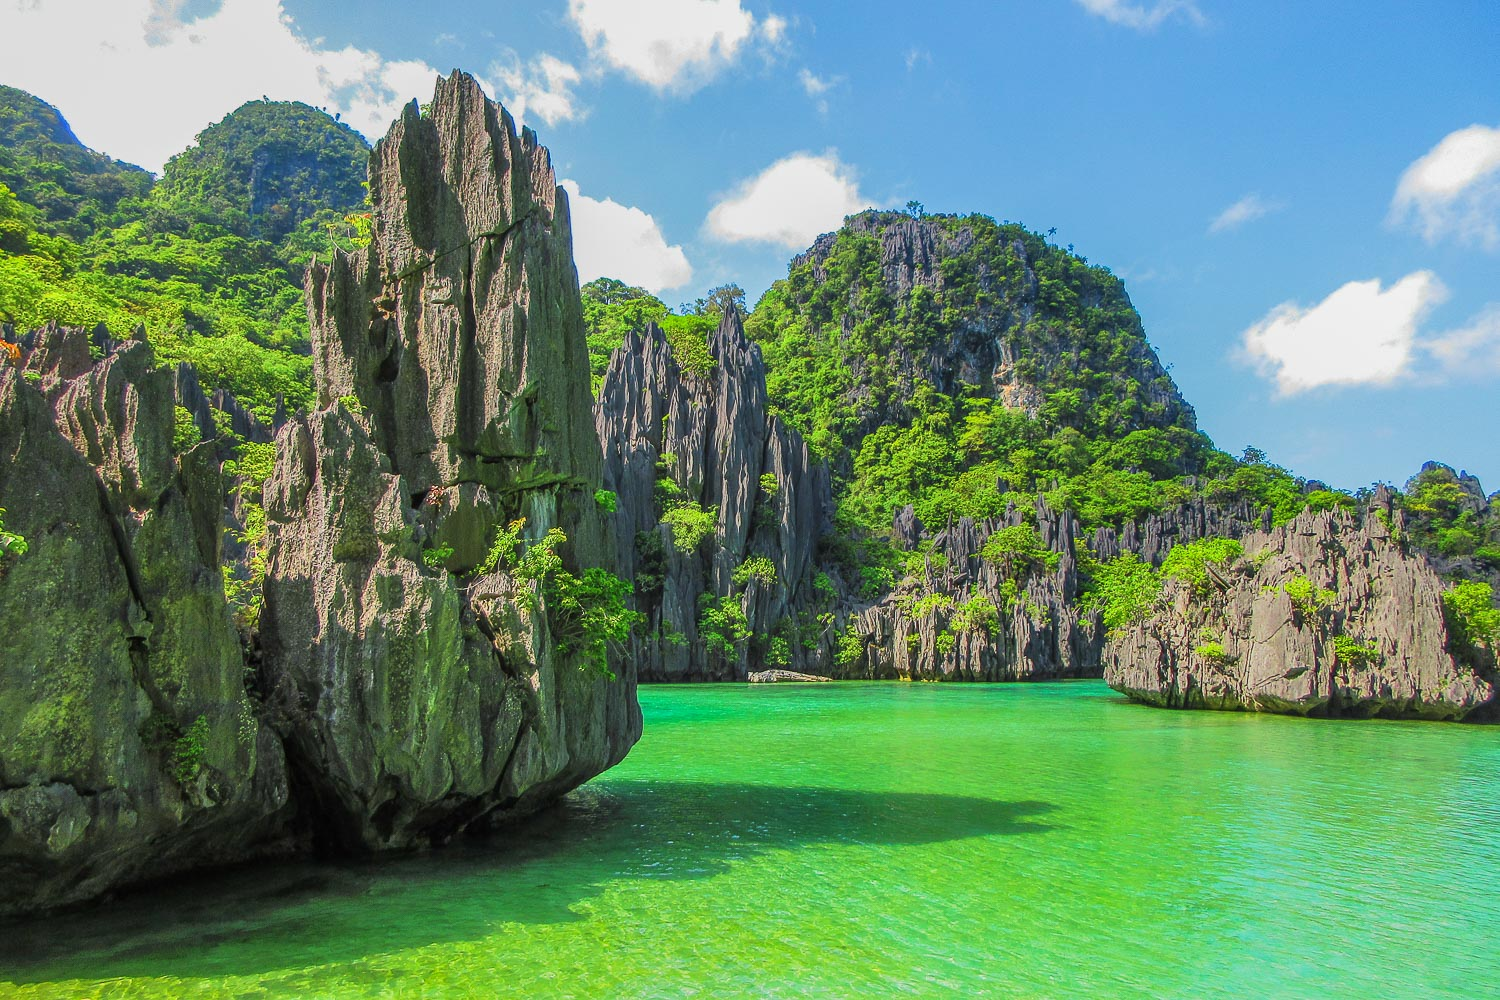 LAGOON. Cadlao Lagoon has emerald waters and towering limestone formations surrounding it.